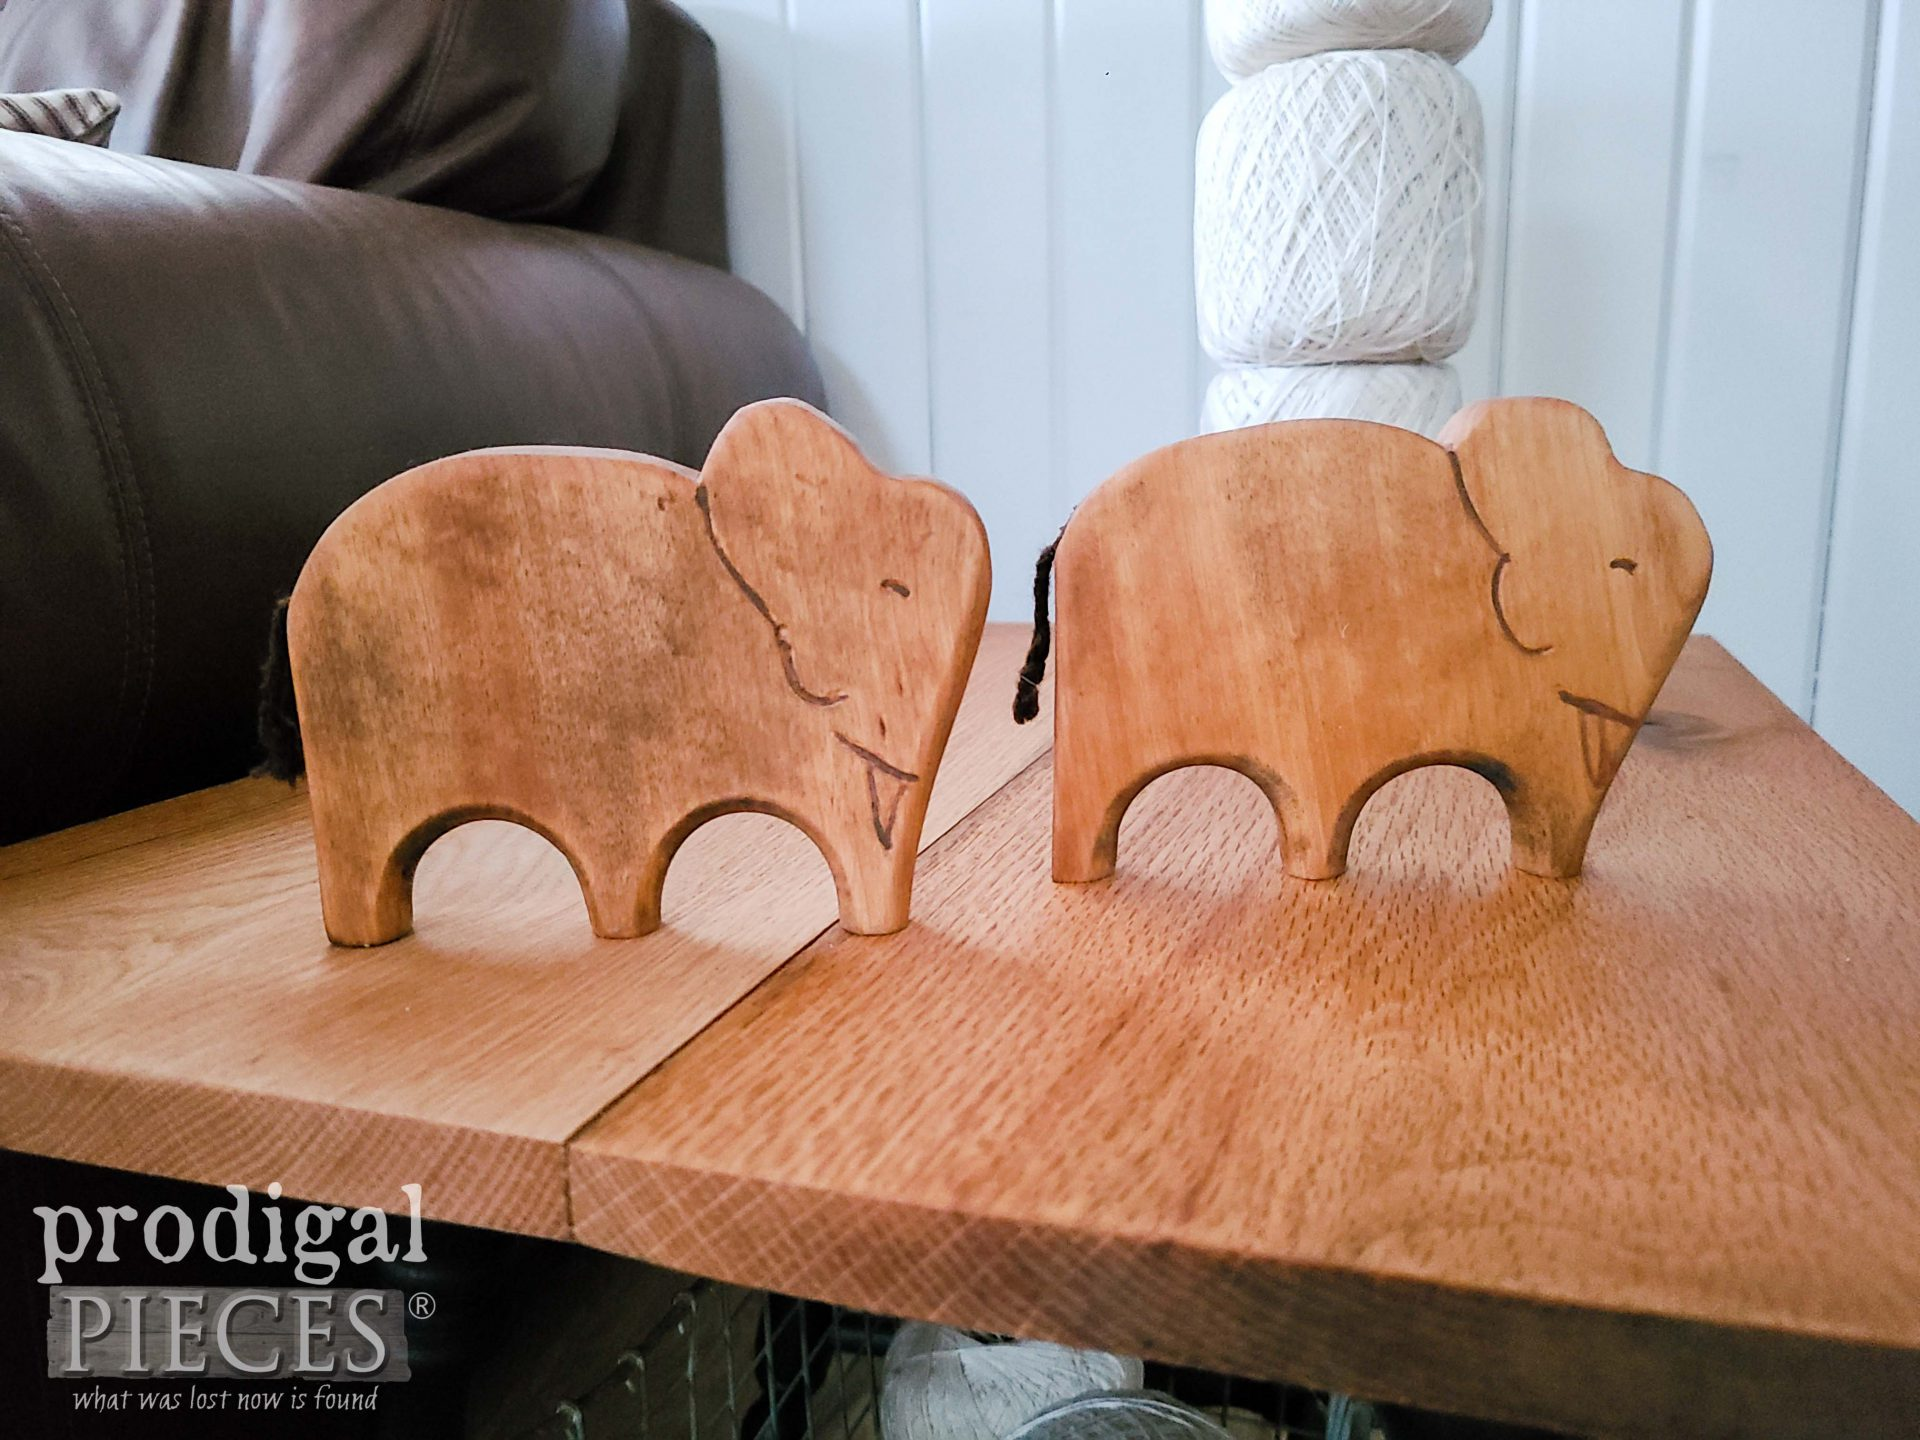 Handmade Wooden Elephants made from Upcycled Chair Back by Larissa of Prodigal Pieces | prodigalpieces.com #prodigalpieces #farmhouse #home #diy #elephant